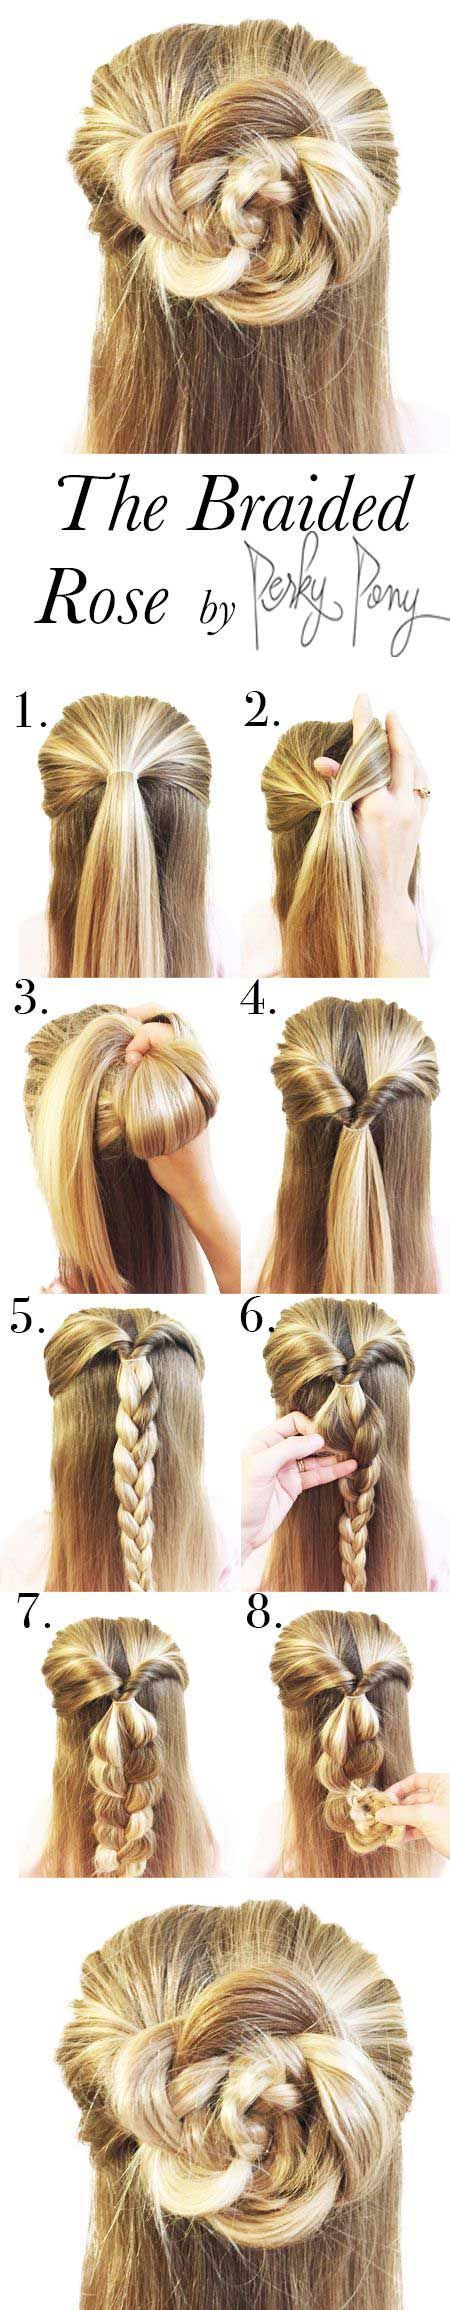 Enjoyable 1000 Ideas About Down Hairstyles On Pinterest Half Up Half Down Short Hairstyles Gunalazisus